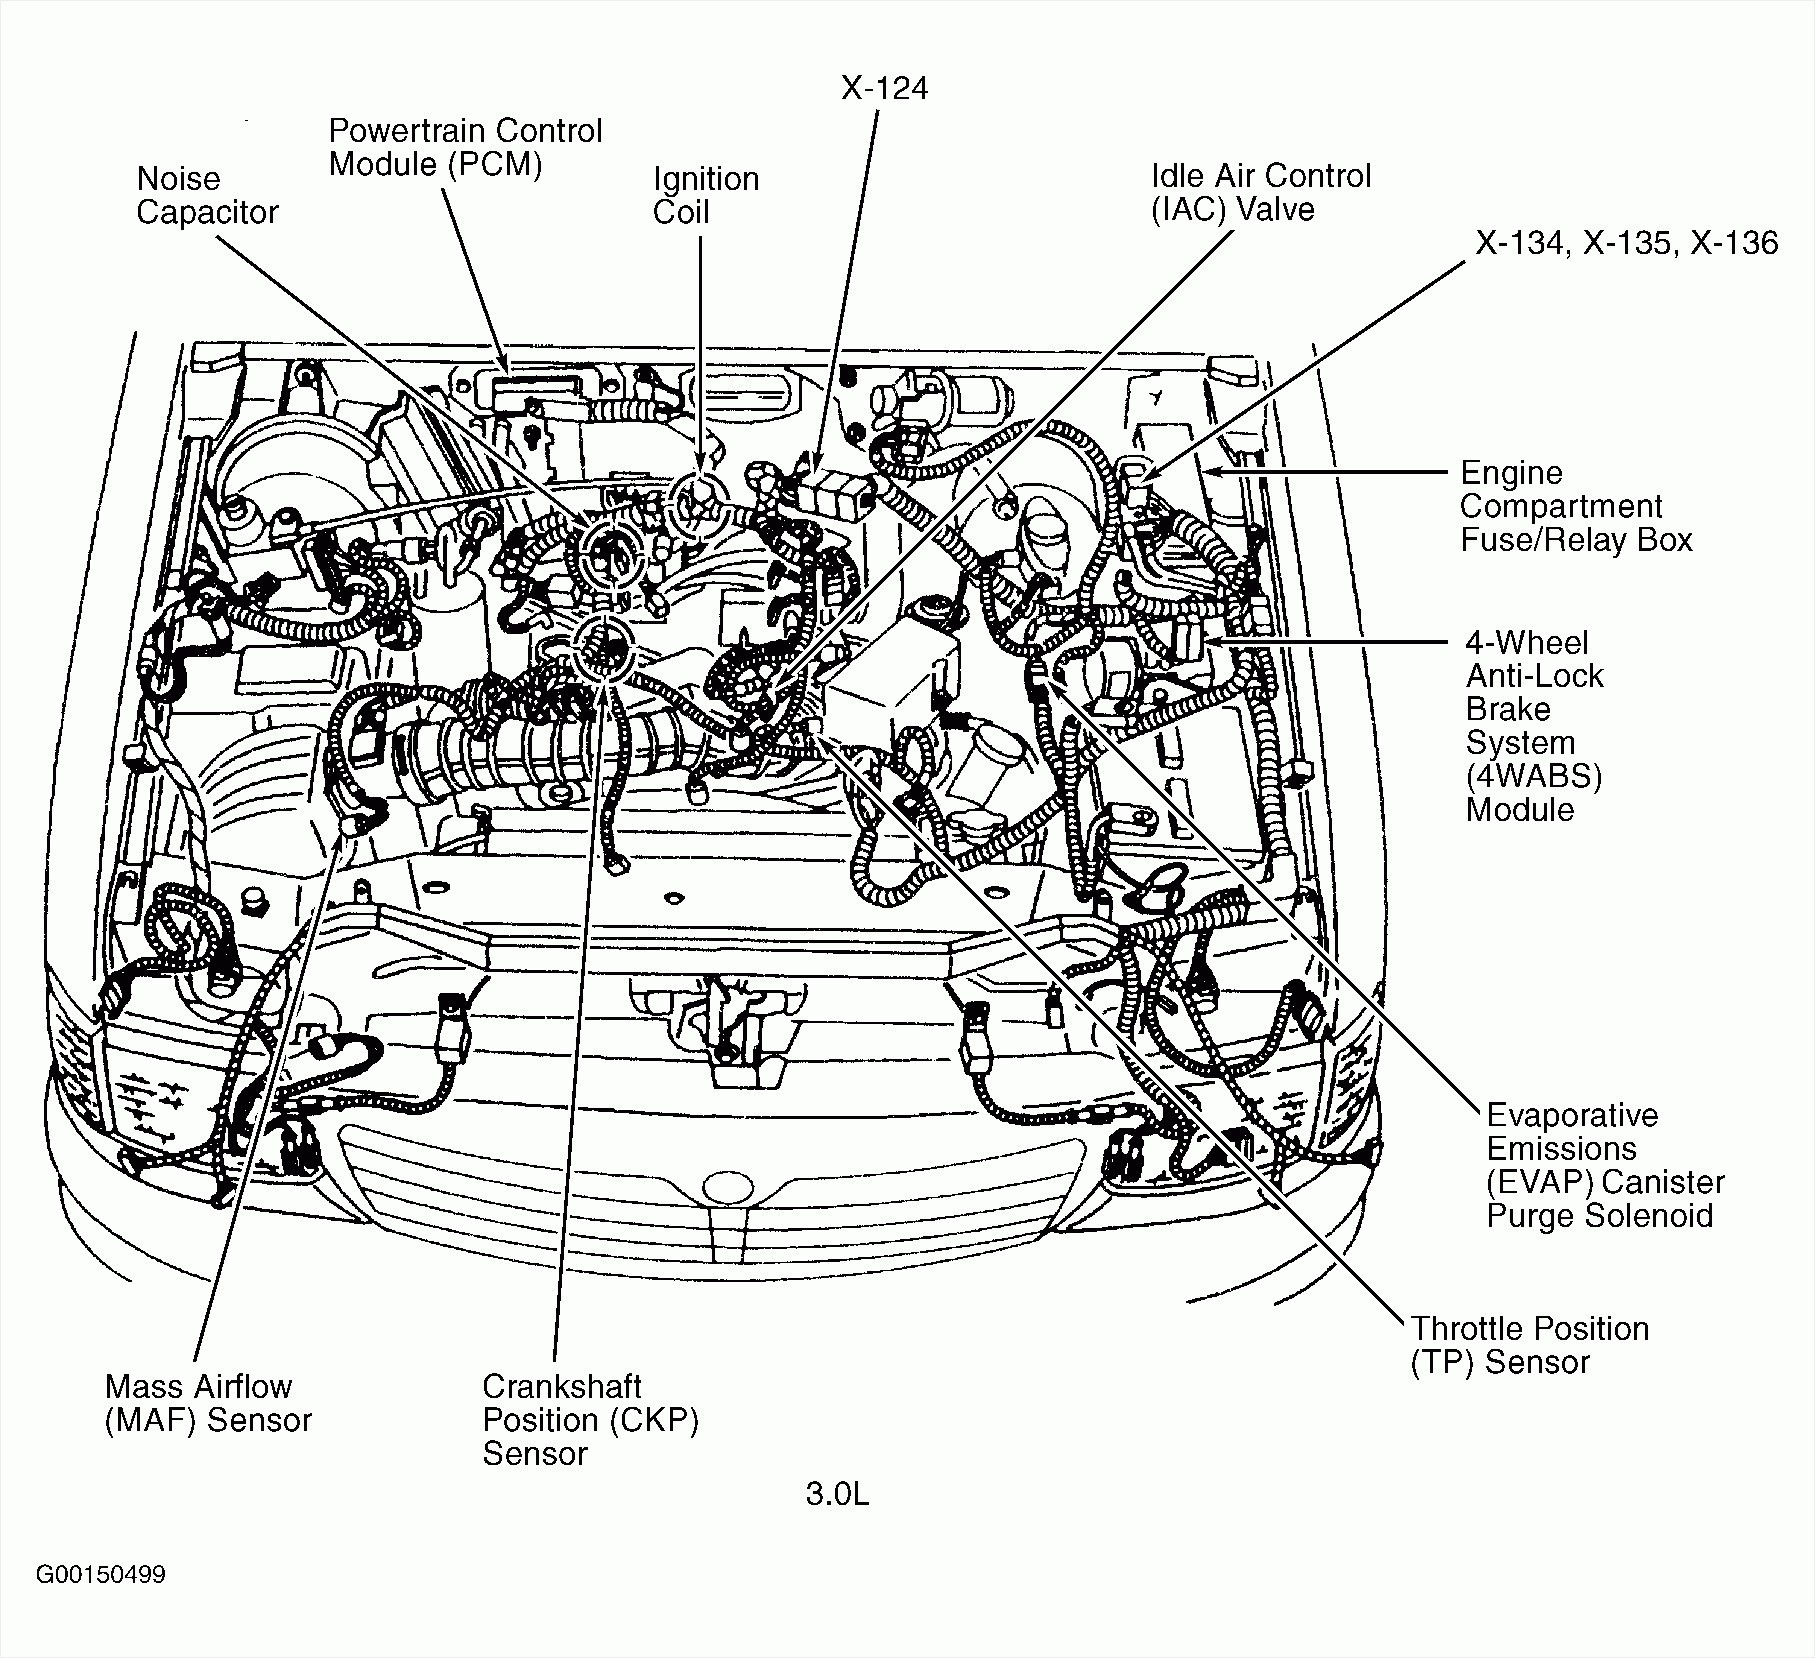 Mx5 Engine Bay Diagram: 2013 Grand Cherokee Fuse Box At Nayabfun.com